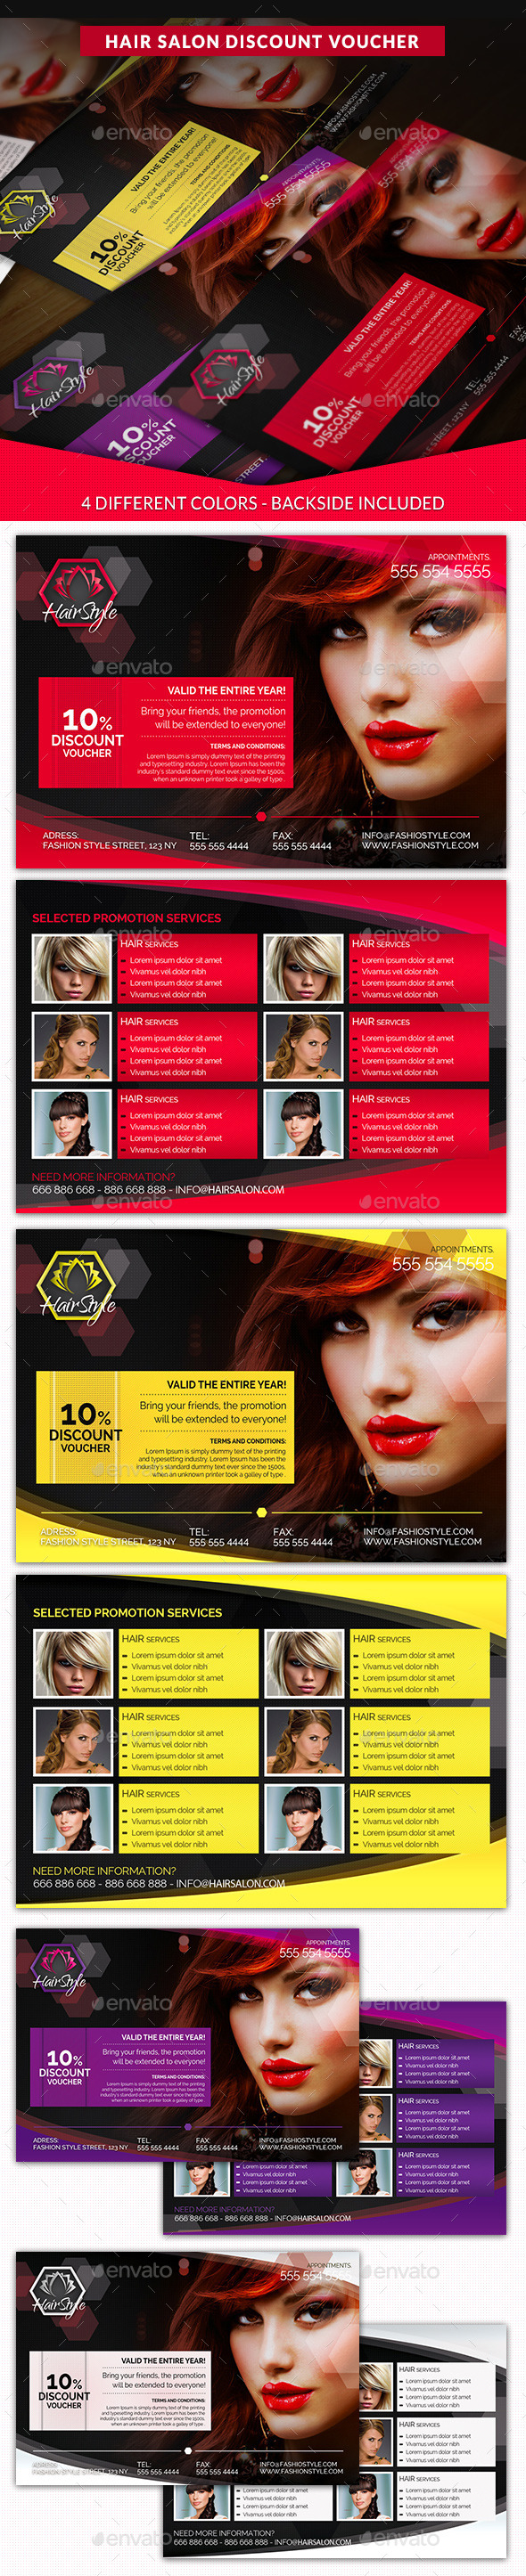 GraphicRiver Hair Salon Fashion Style Discount Voucher 10563772